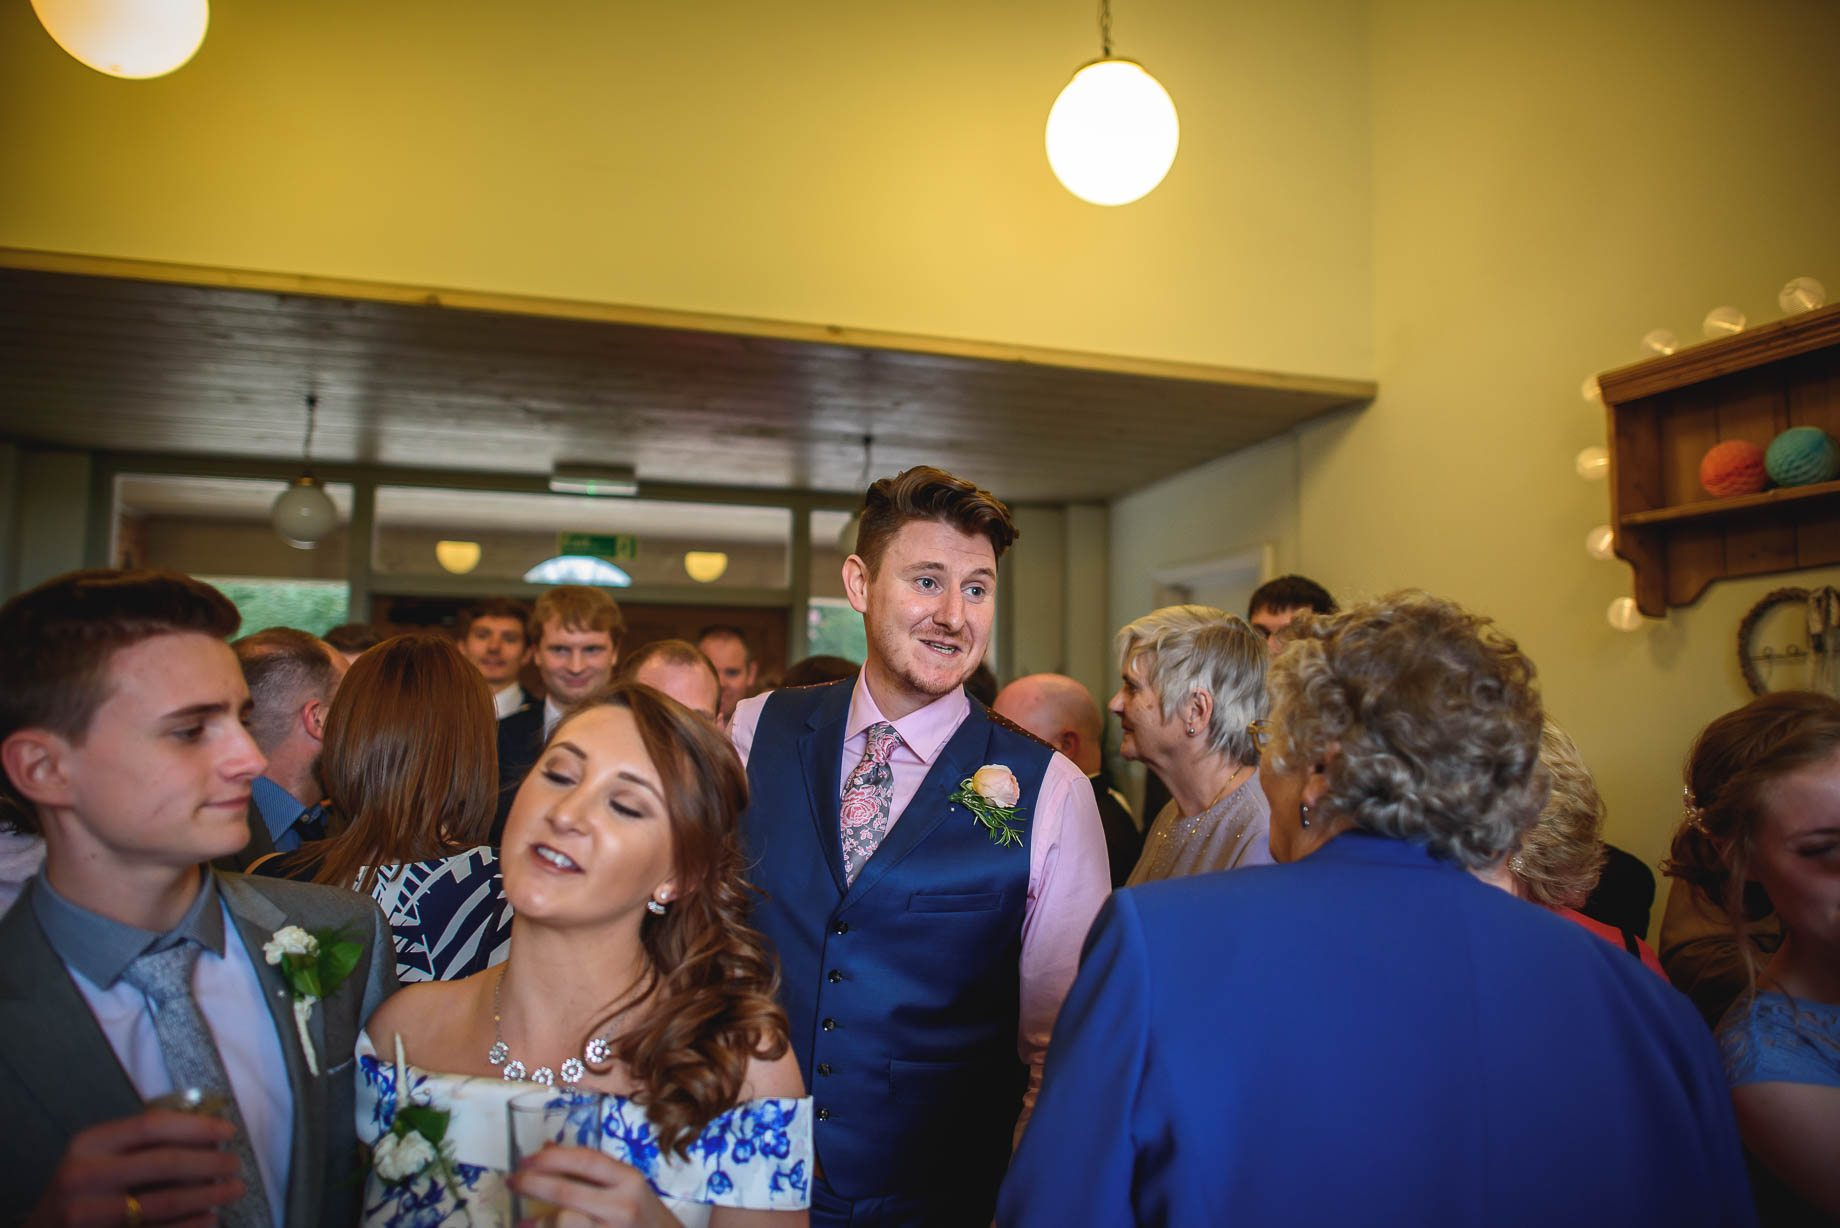 Hampshire wedding photography by Guy Collier - Emily and Tom (156 of 164)